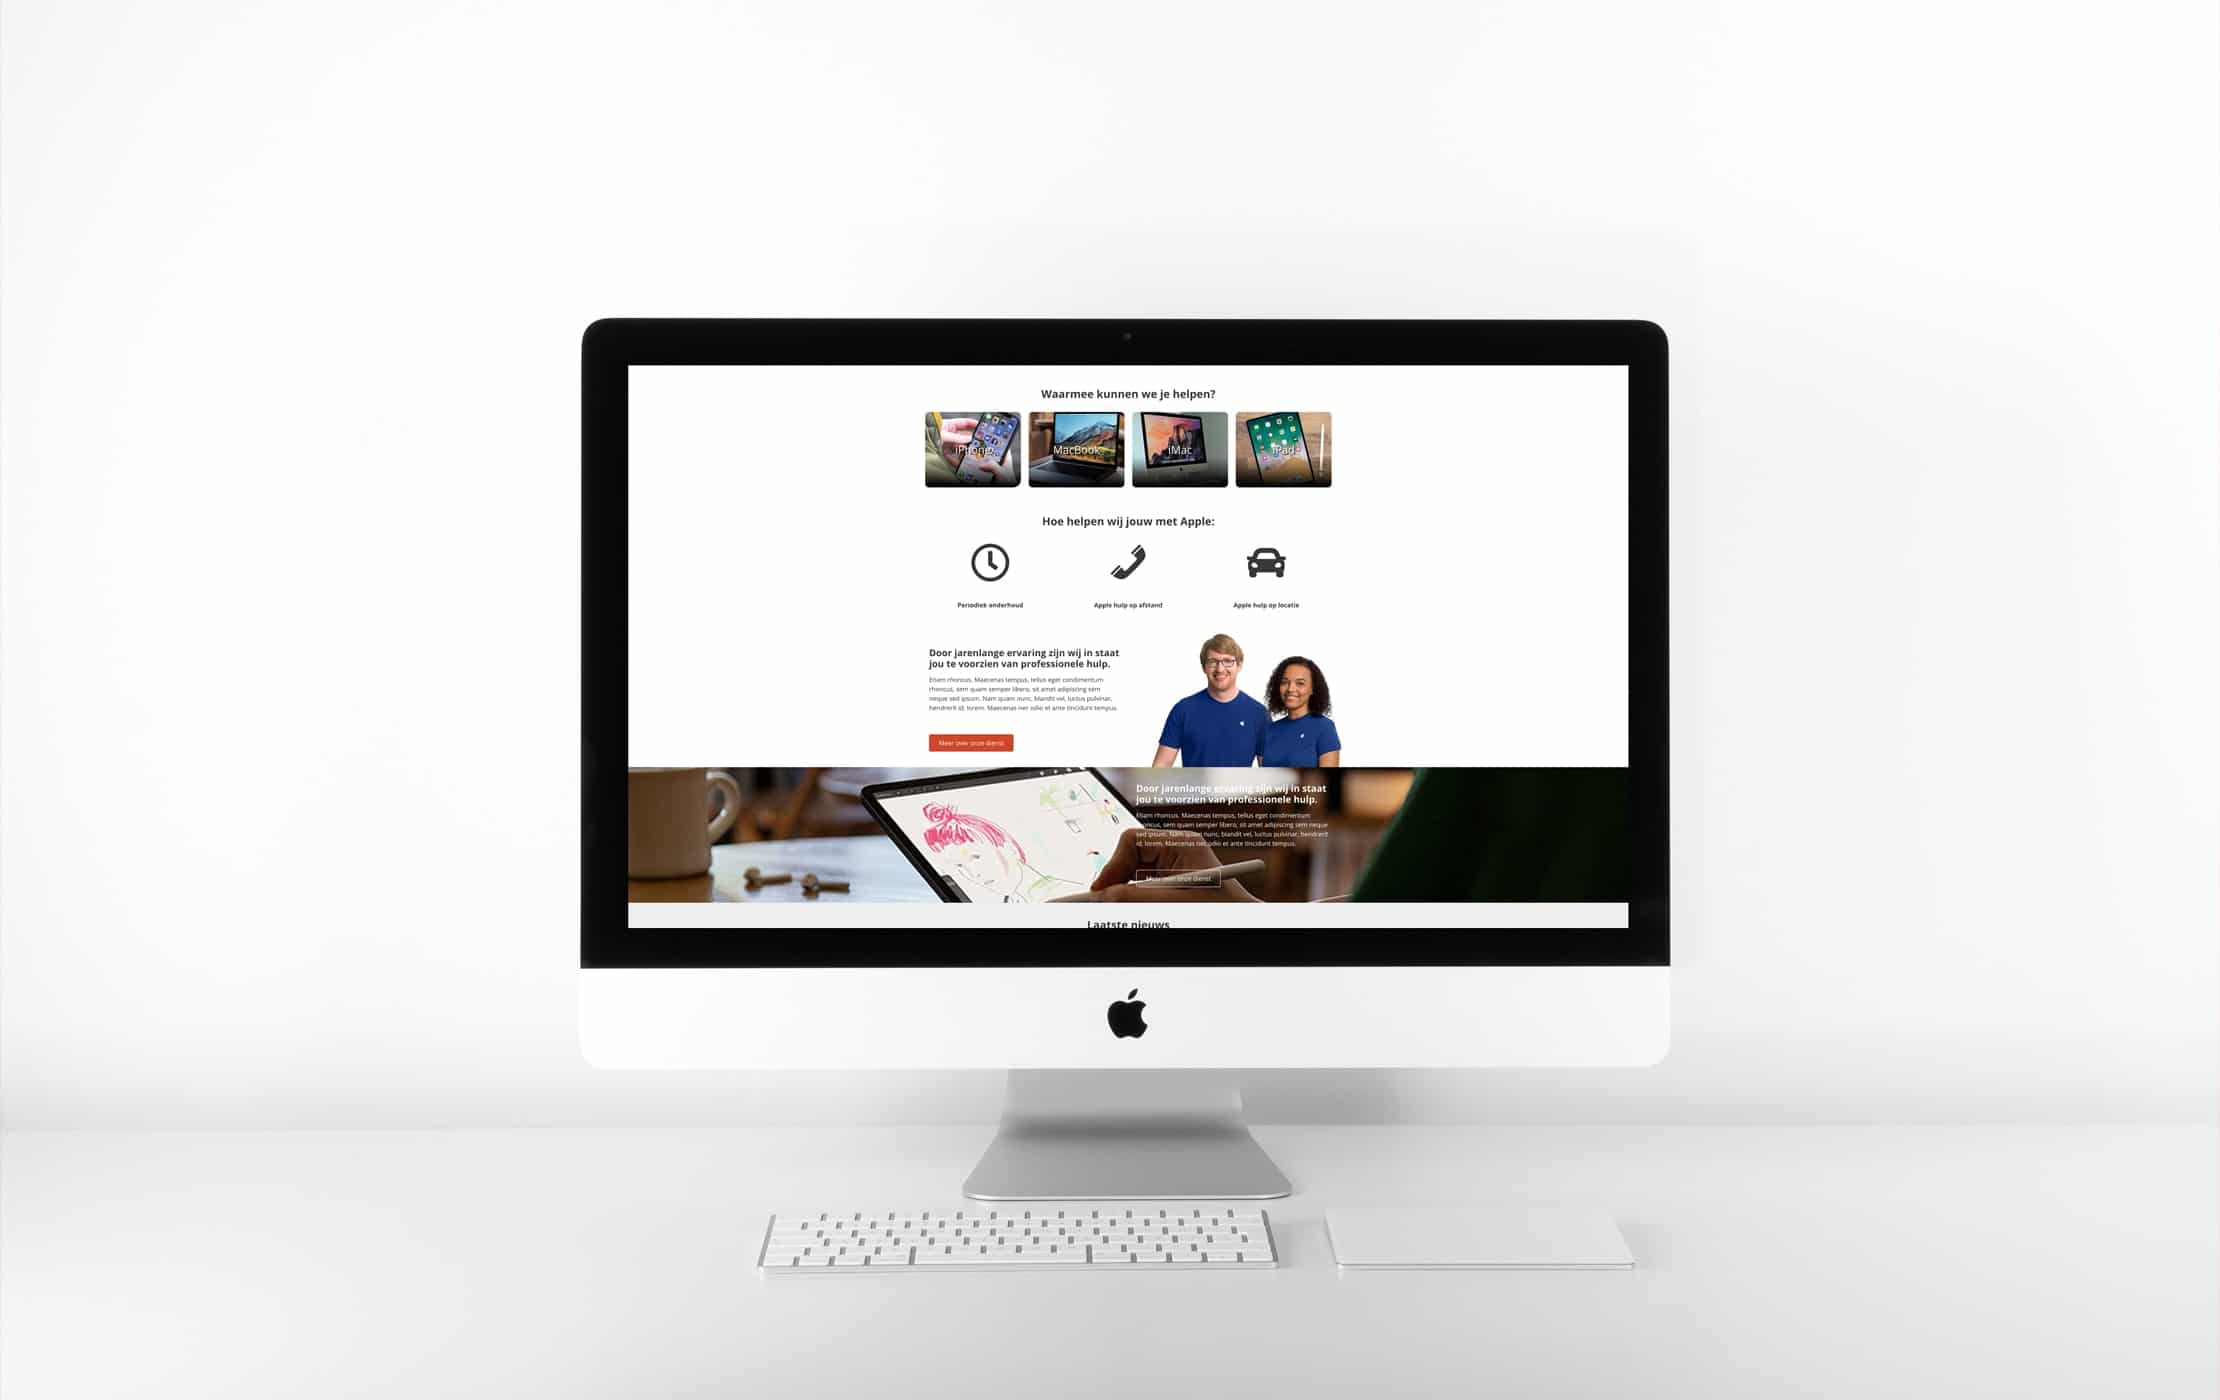 wordpress_website_mac-expert_dreamlab_portfolio